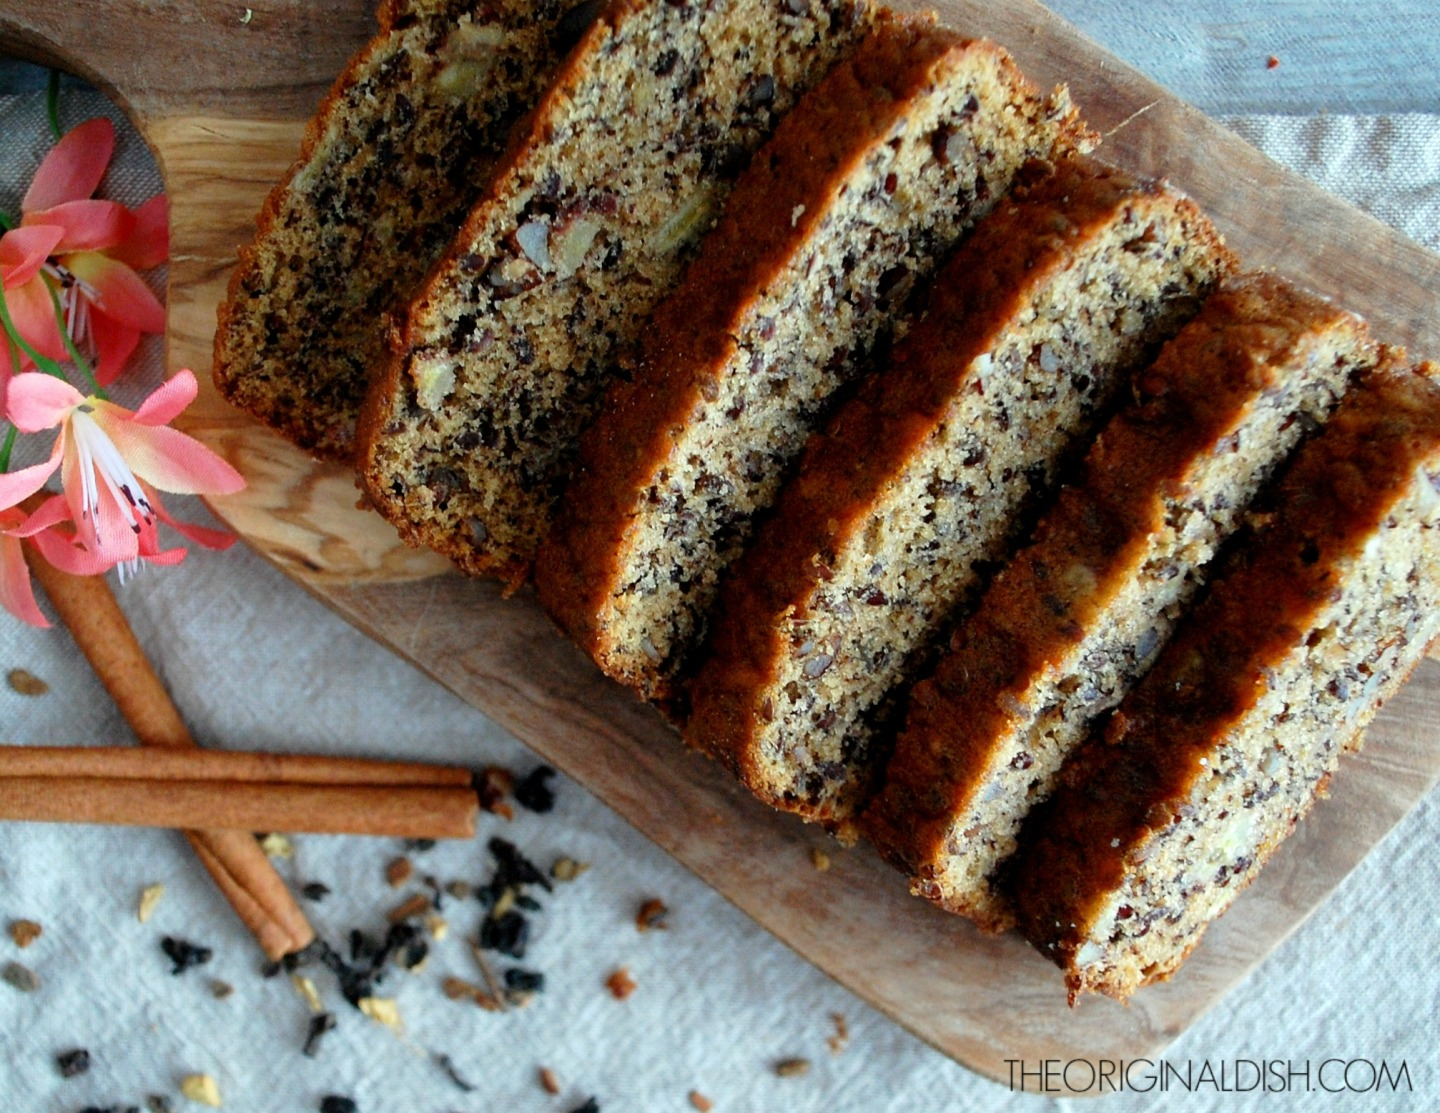 Nut & Seed Banana Bread with Chai Tea Glaze